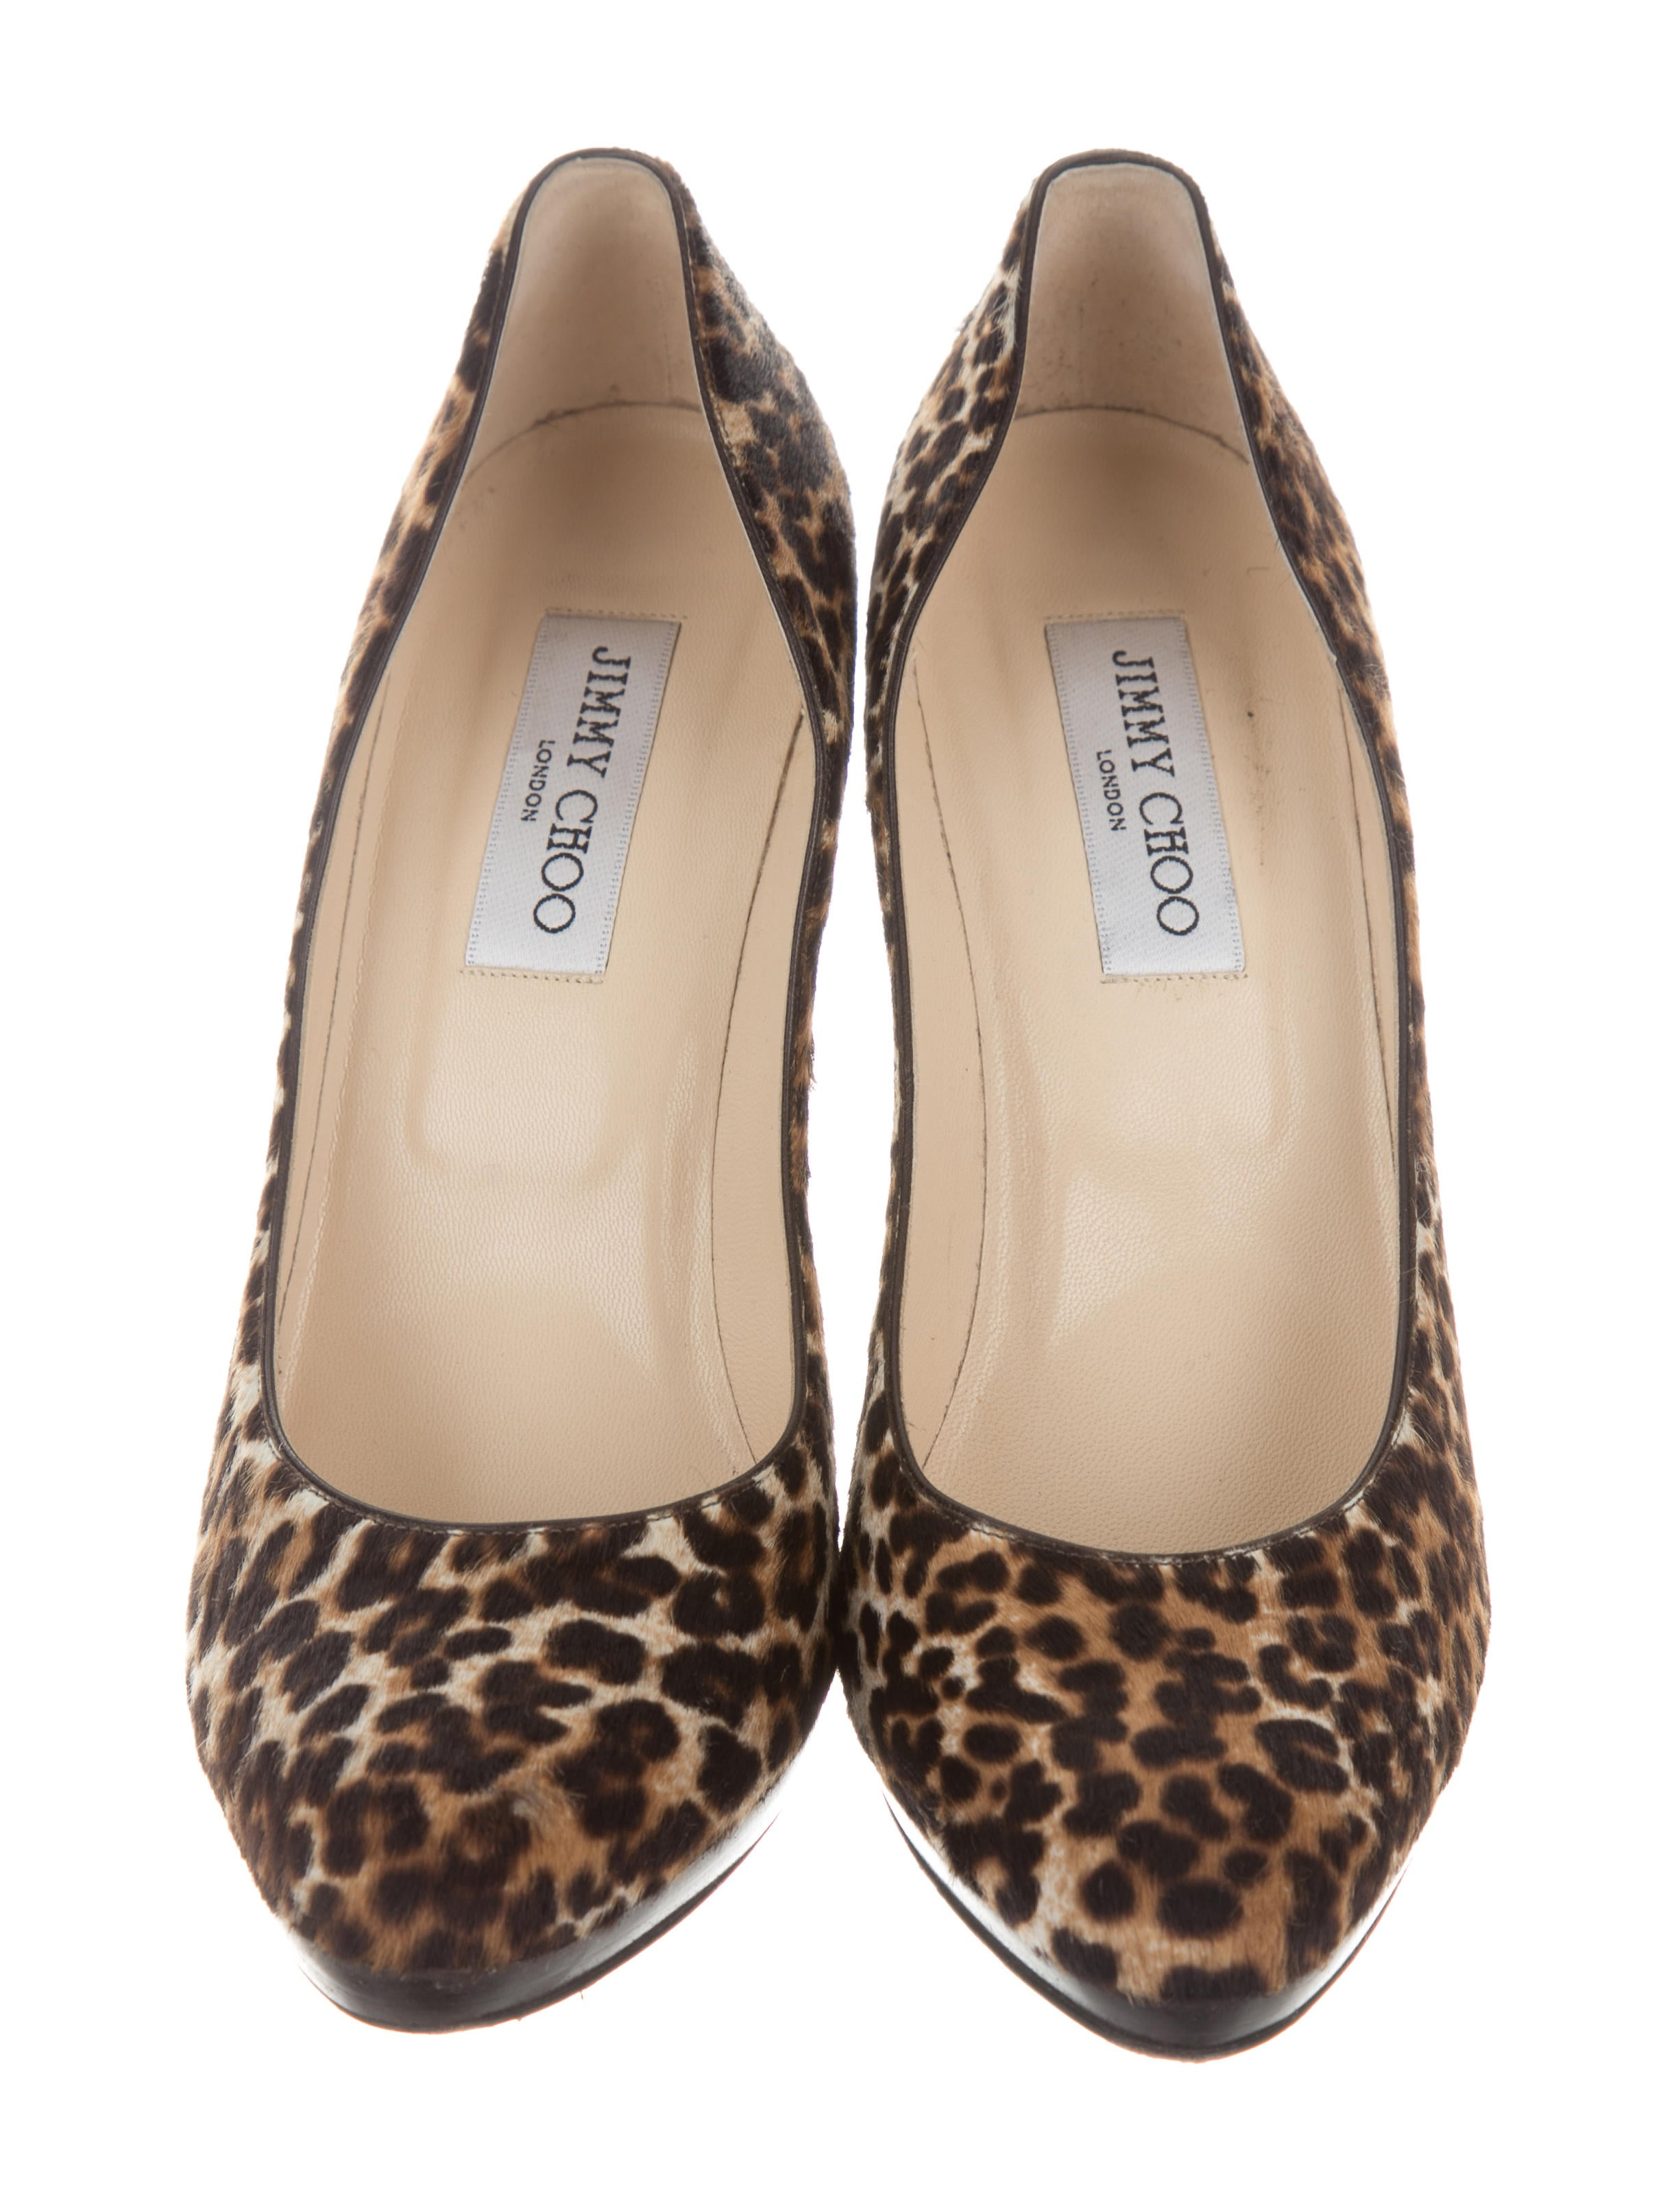 buy cheap outlet locations footaction sale online Jimmy Choo Pointed-Toe Ponyhair Flats recommend clearance pick a best zFXY9D9hOj